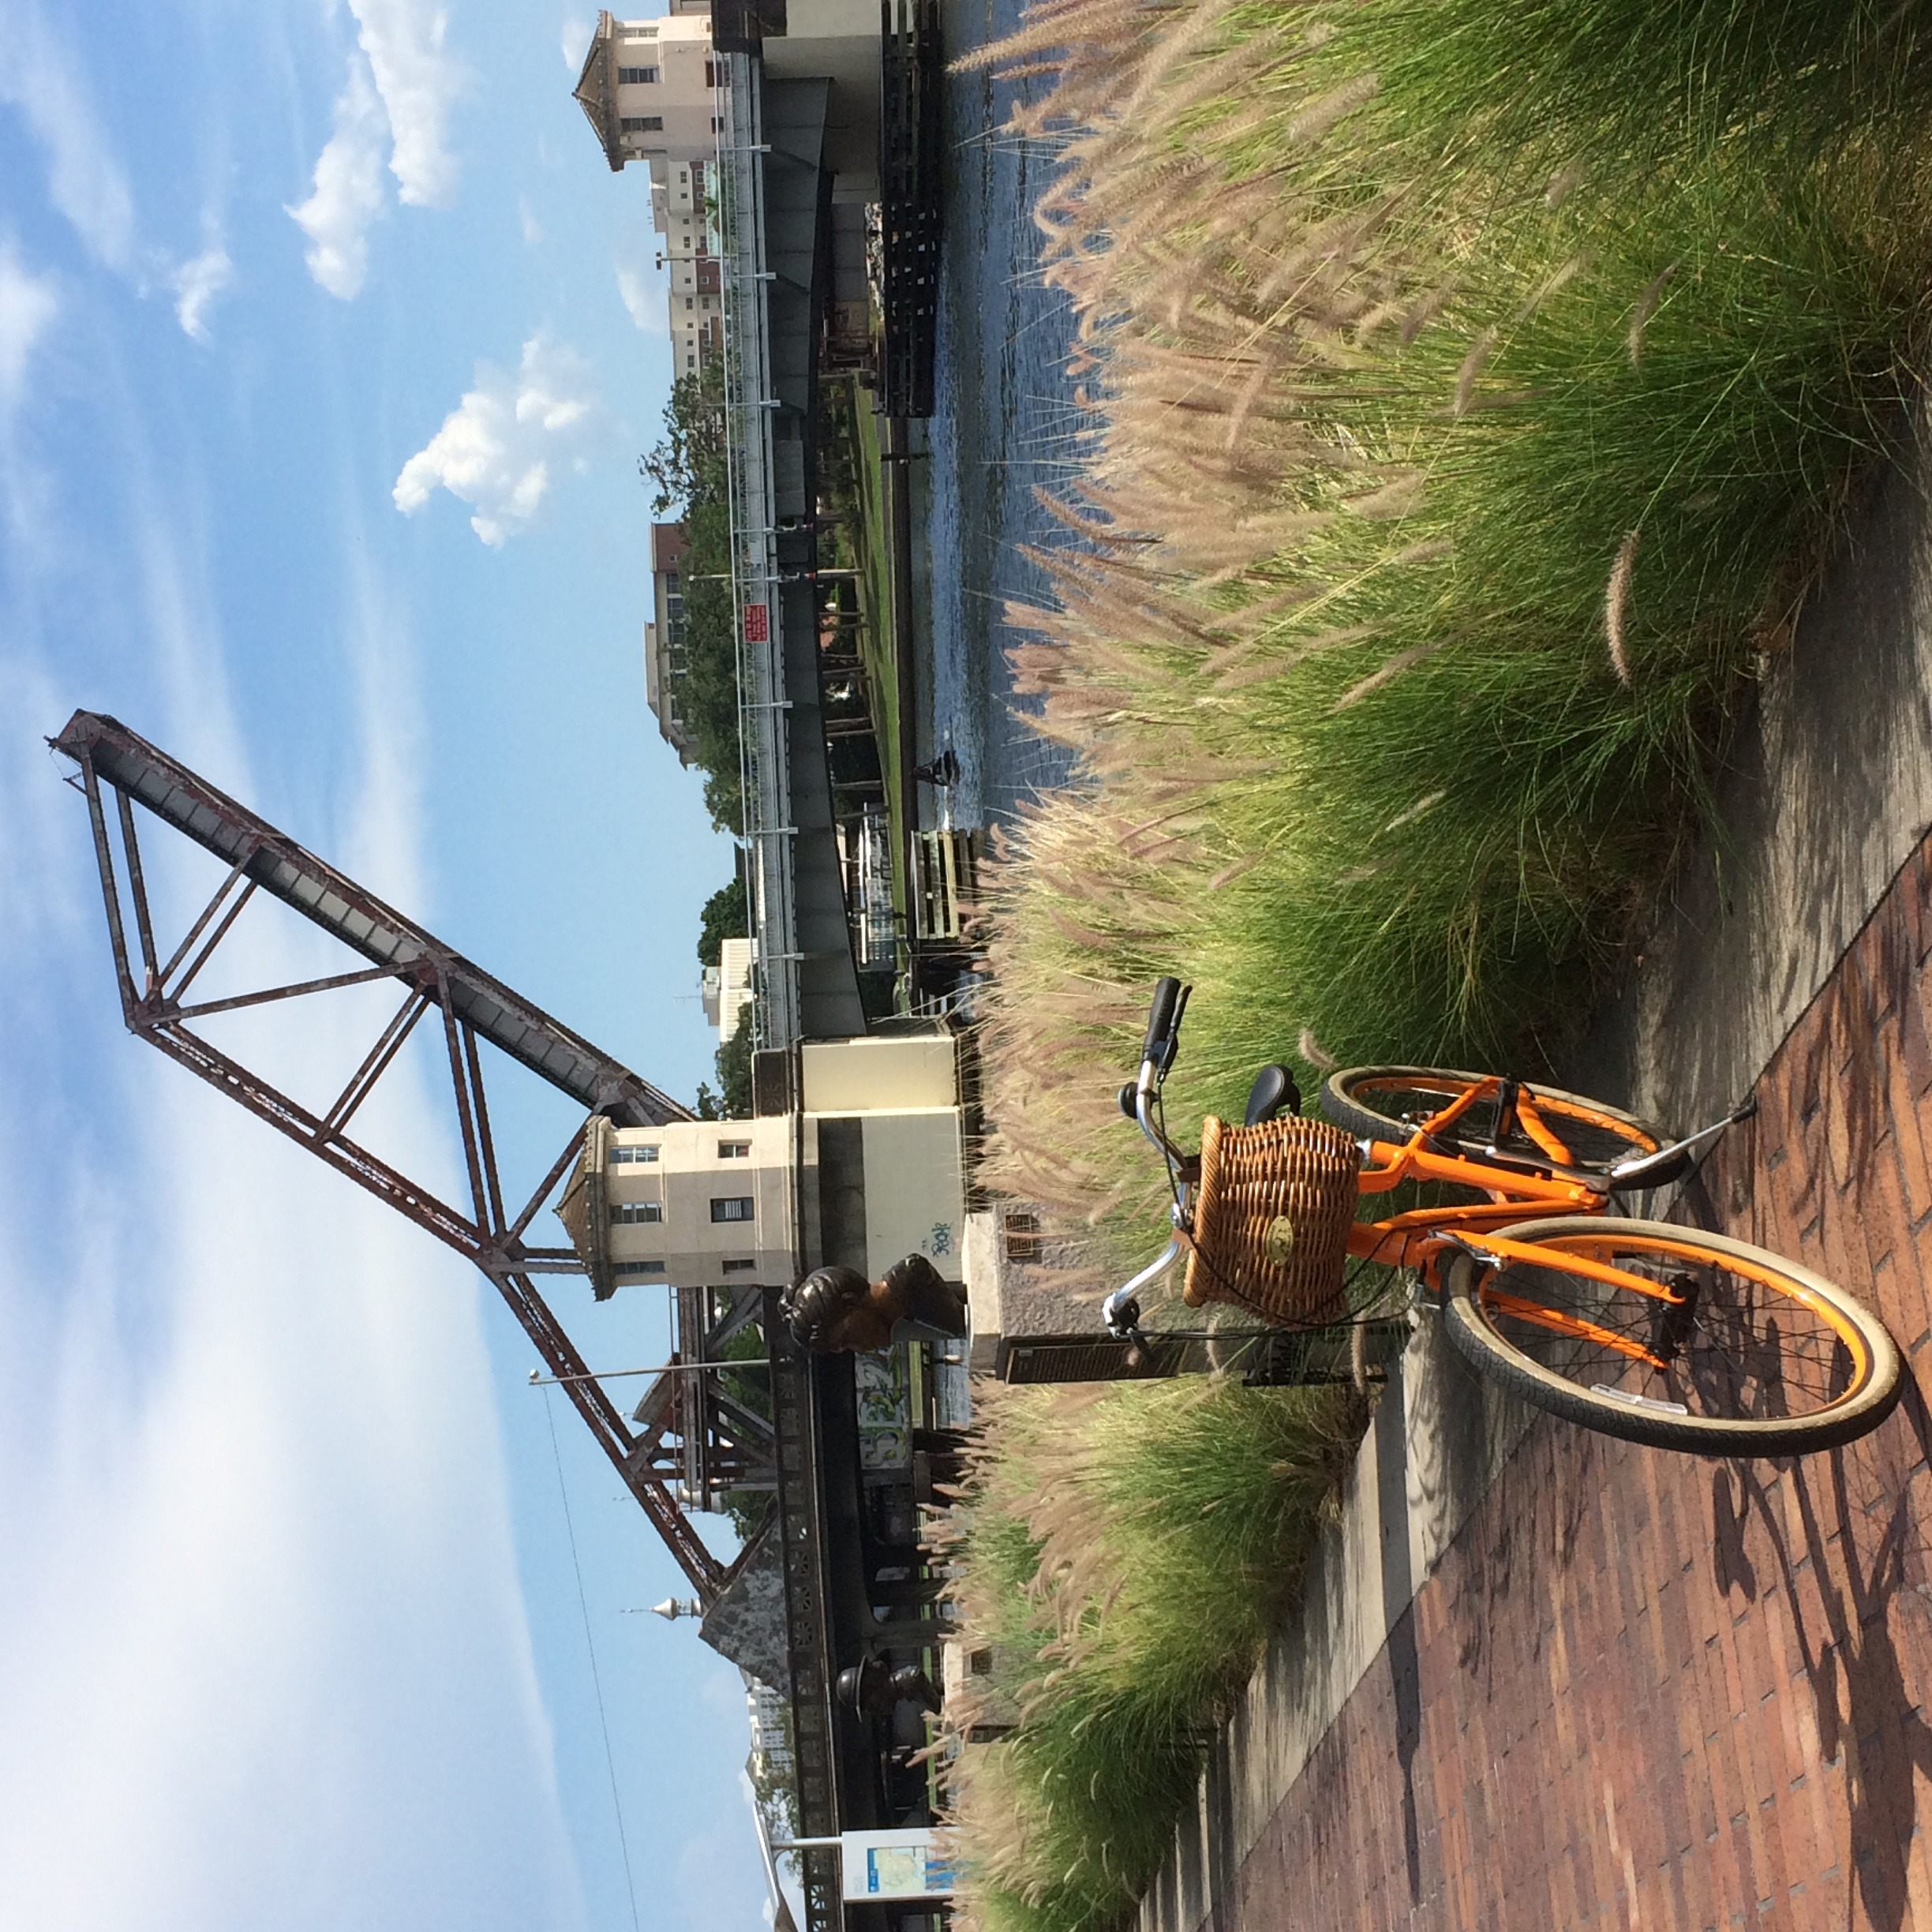 Tampa By Bike at the old rail bridge